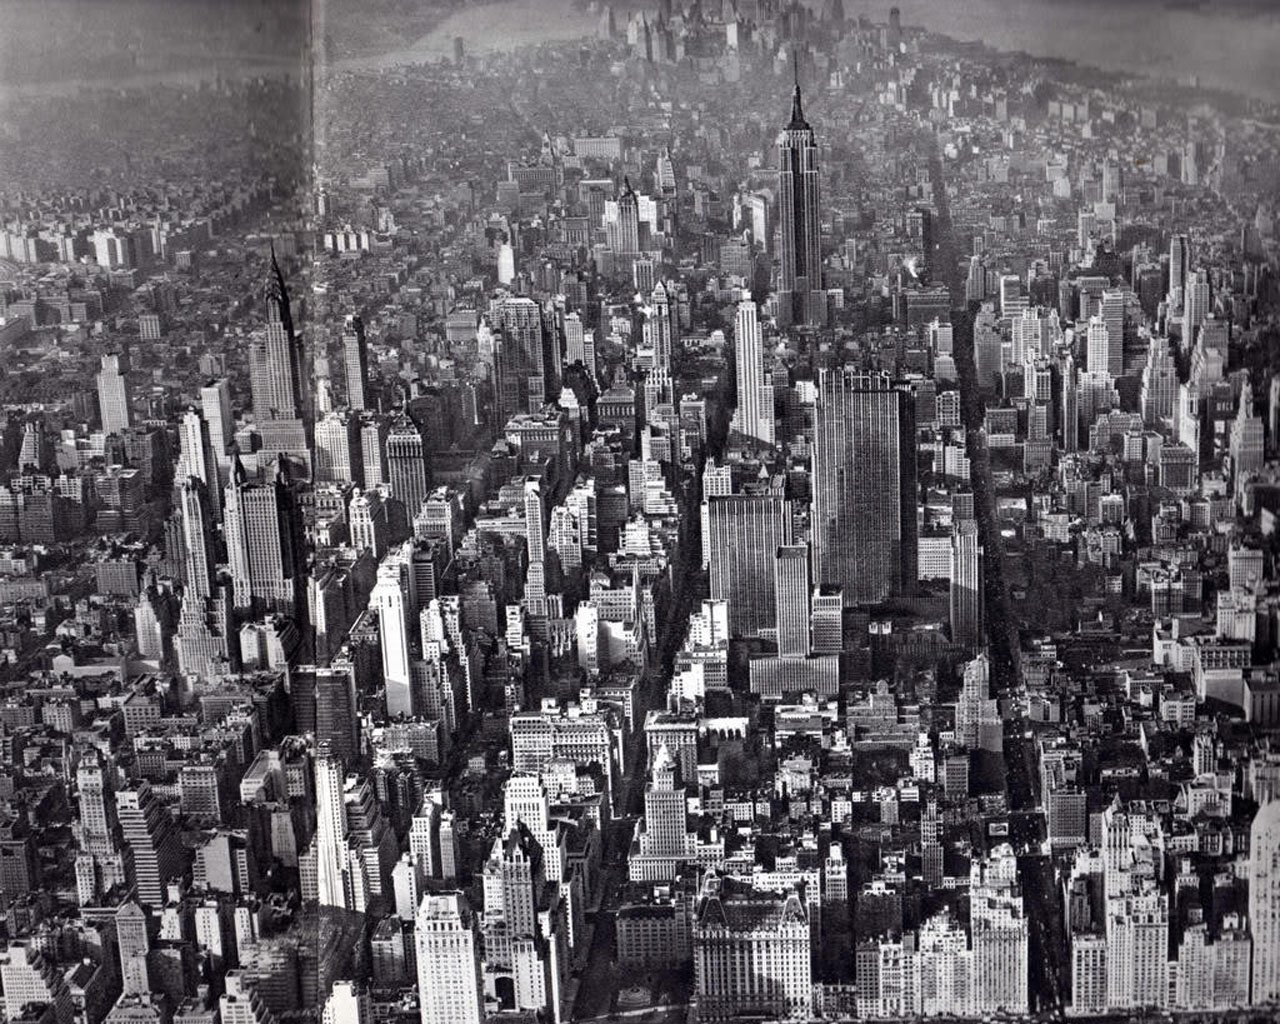 Black And White New York Wallpaper   Widescreen HD Wallpapers 1280x1024